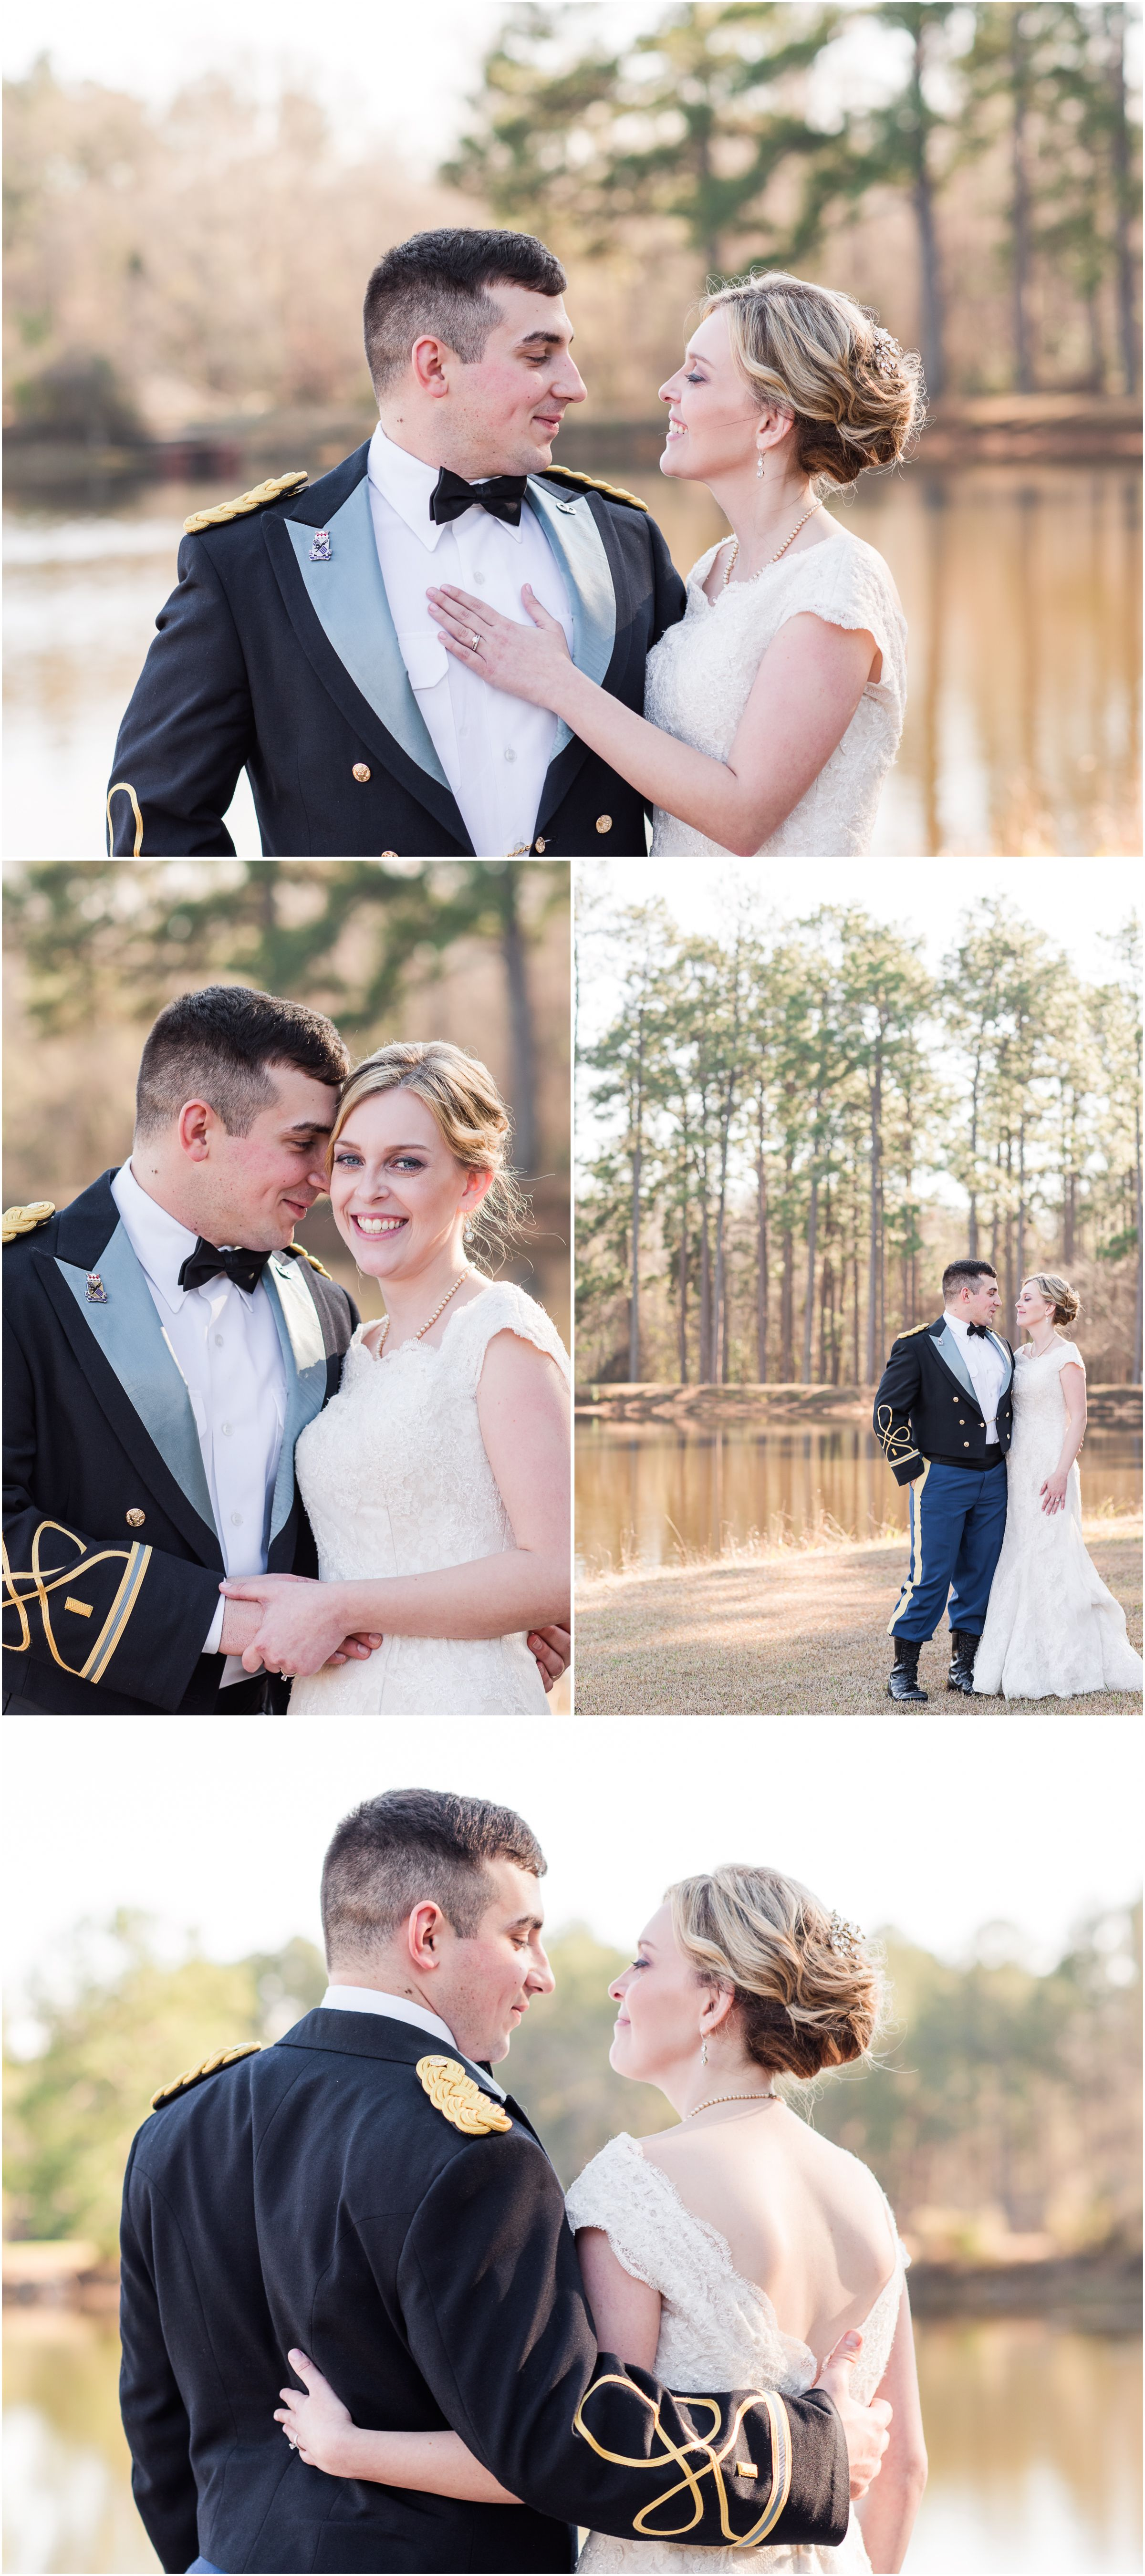 Greenville wedding photographer blue wedding colors and photography